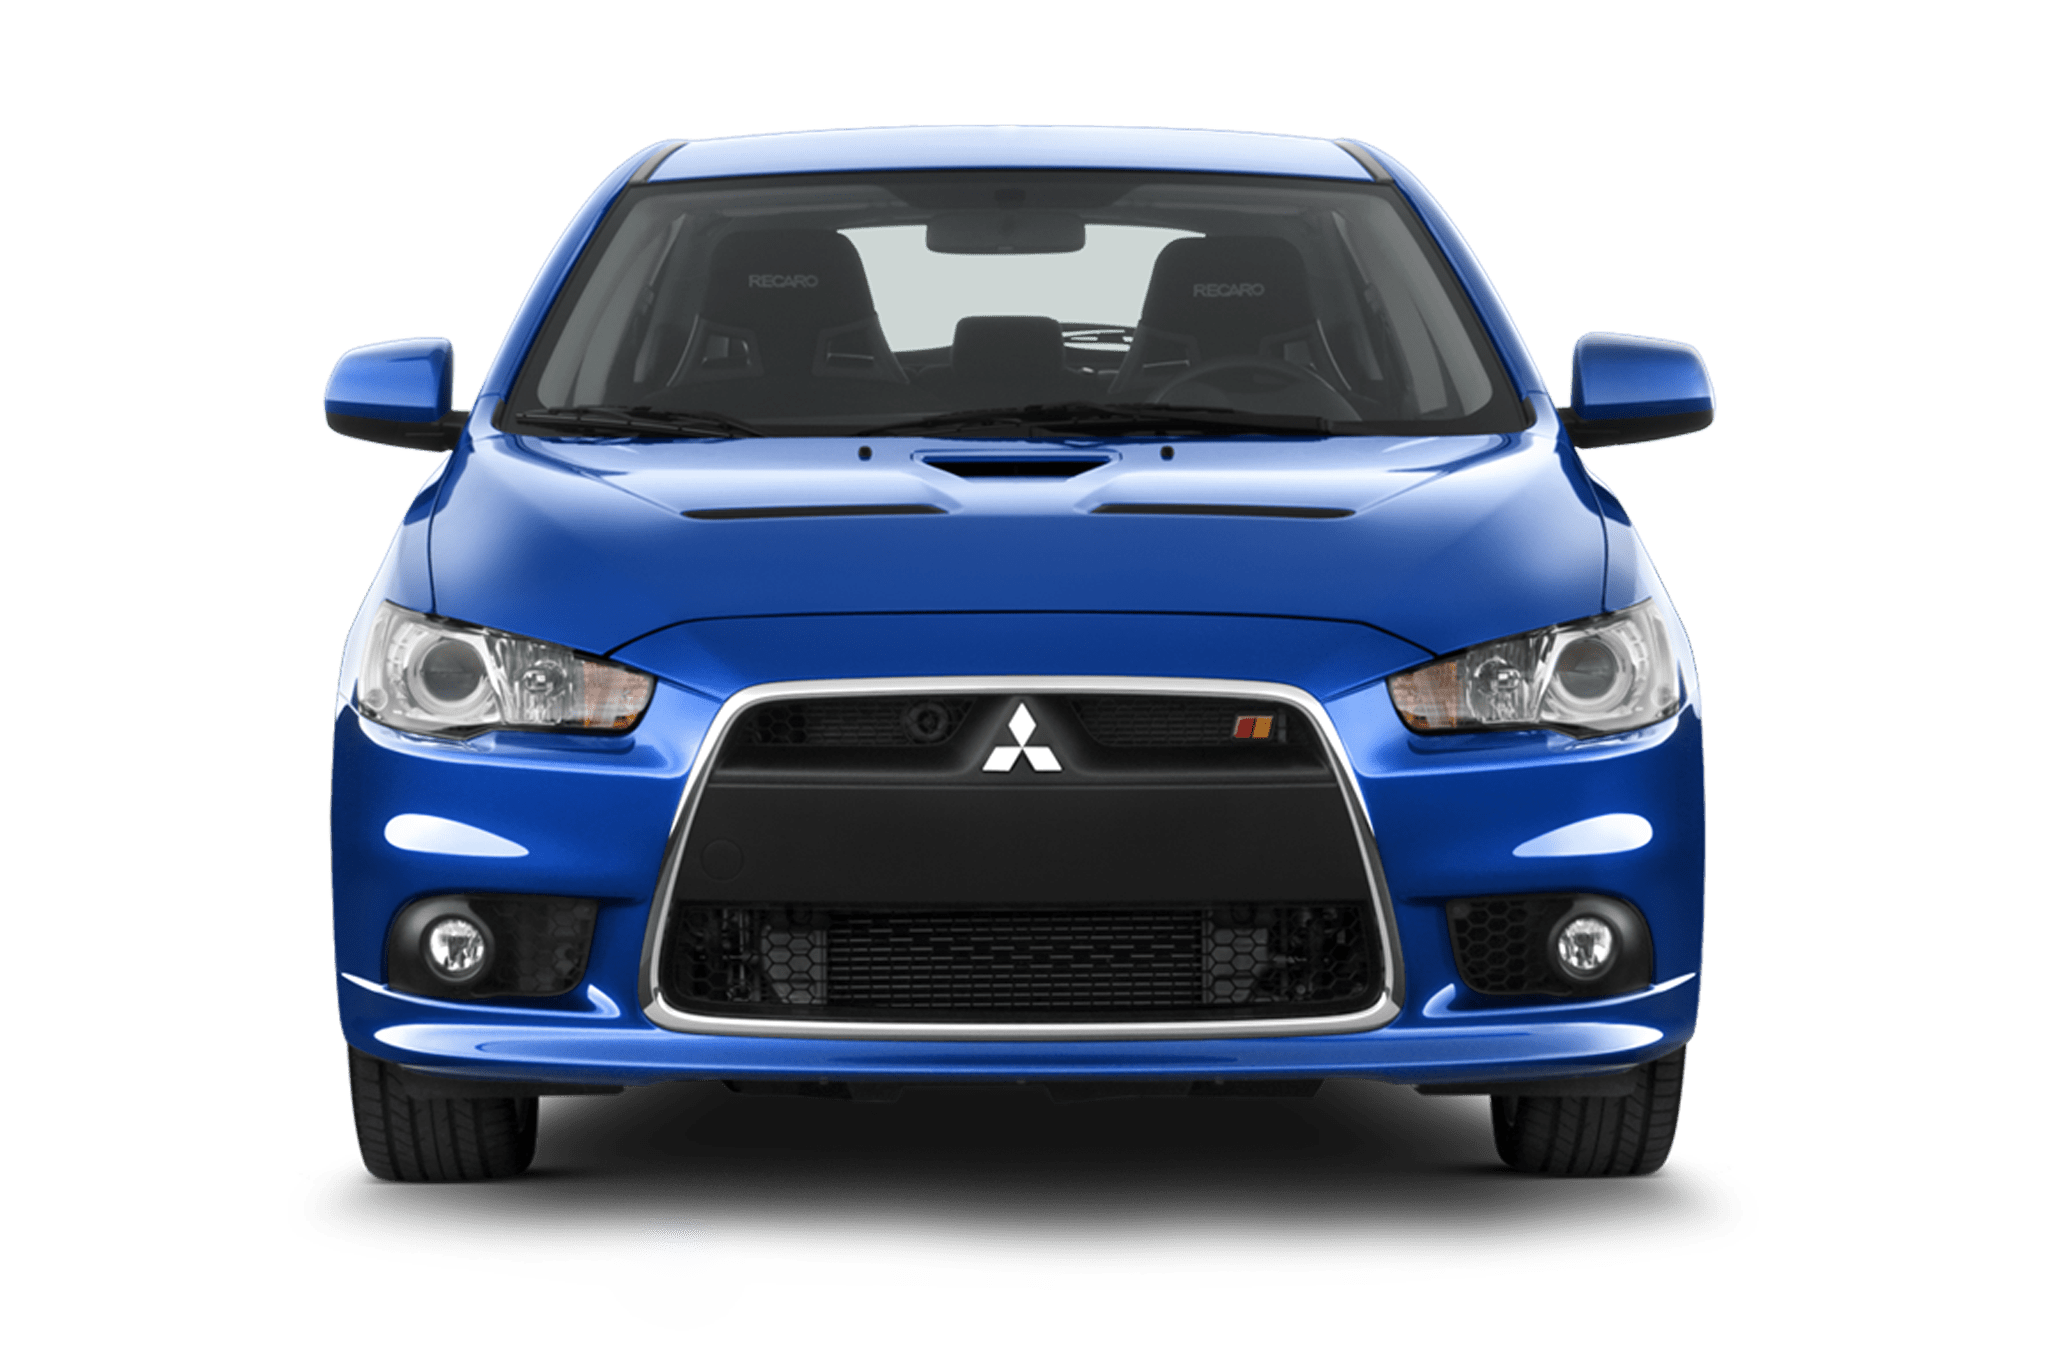 Mitsubishi Lancer for hire at Just In Time Transportation Services